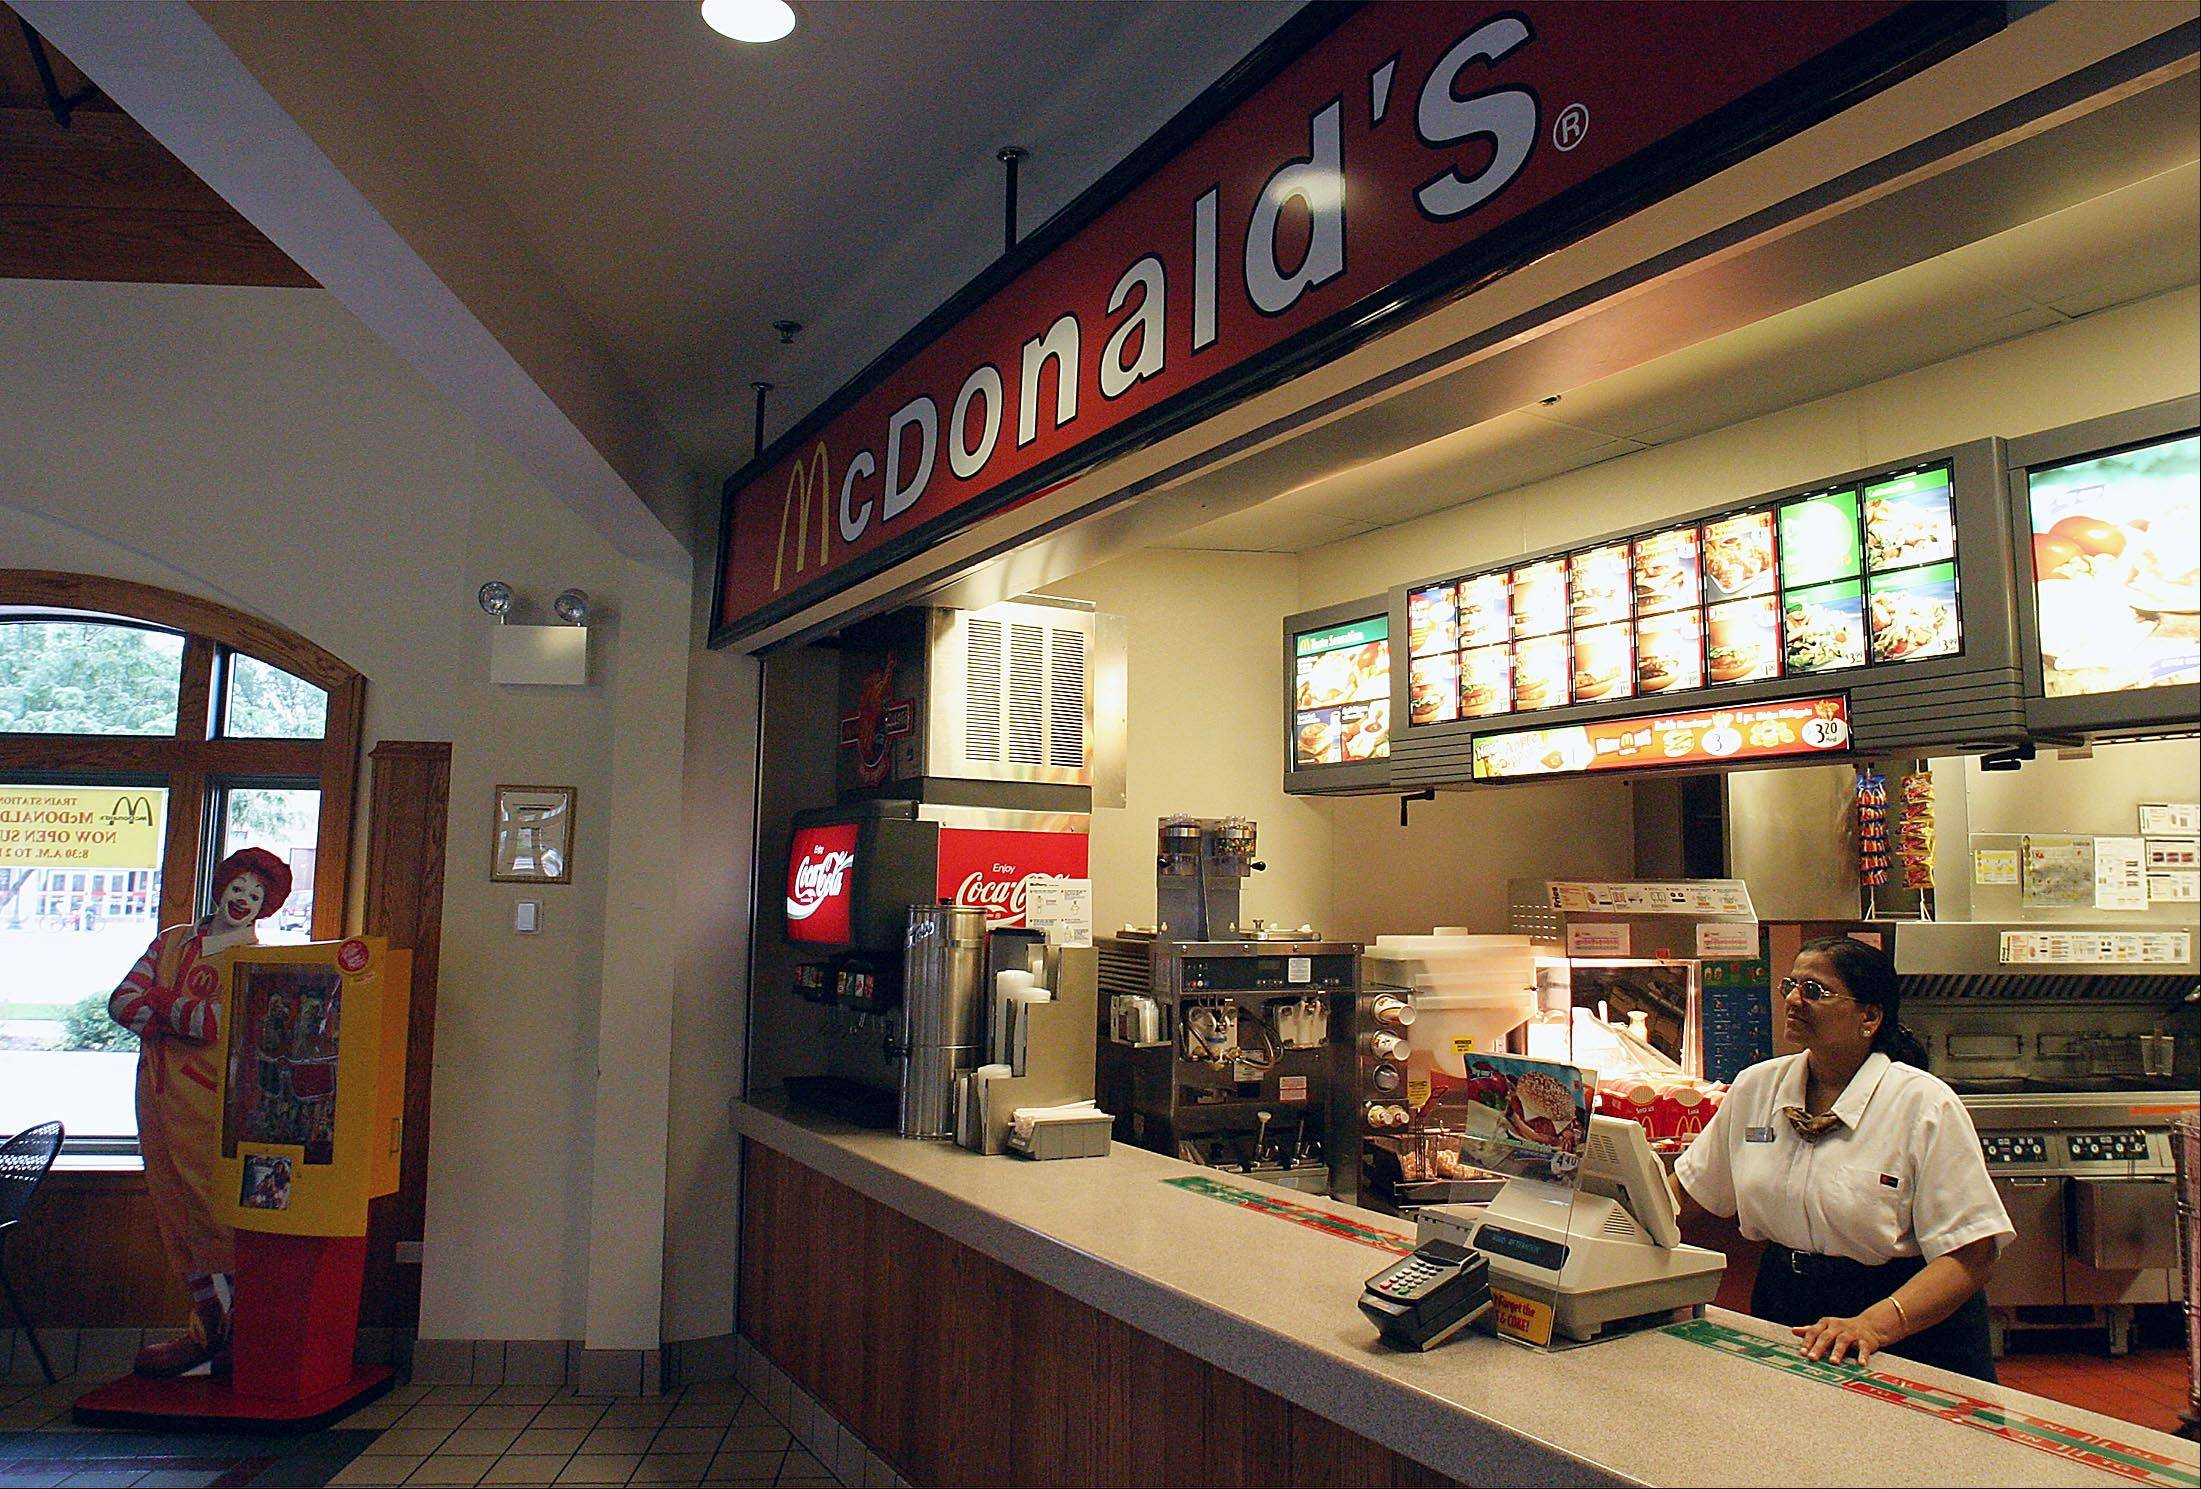 McDonald�s Corp., which has thrived in recent years by emphasizing affordability and rolling out popular new menu items, is starting to show signs of tear from the volatile global economy.